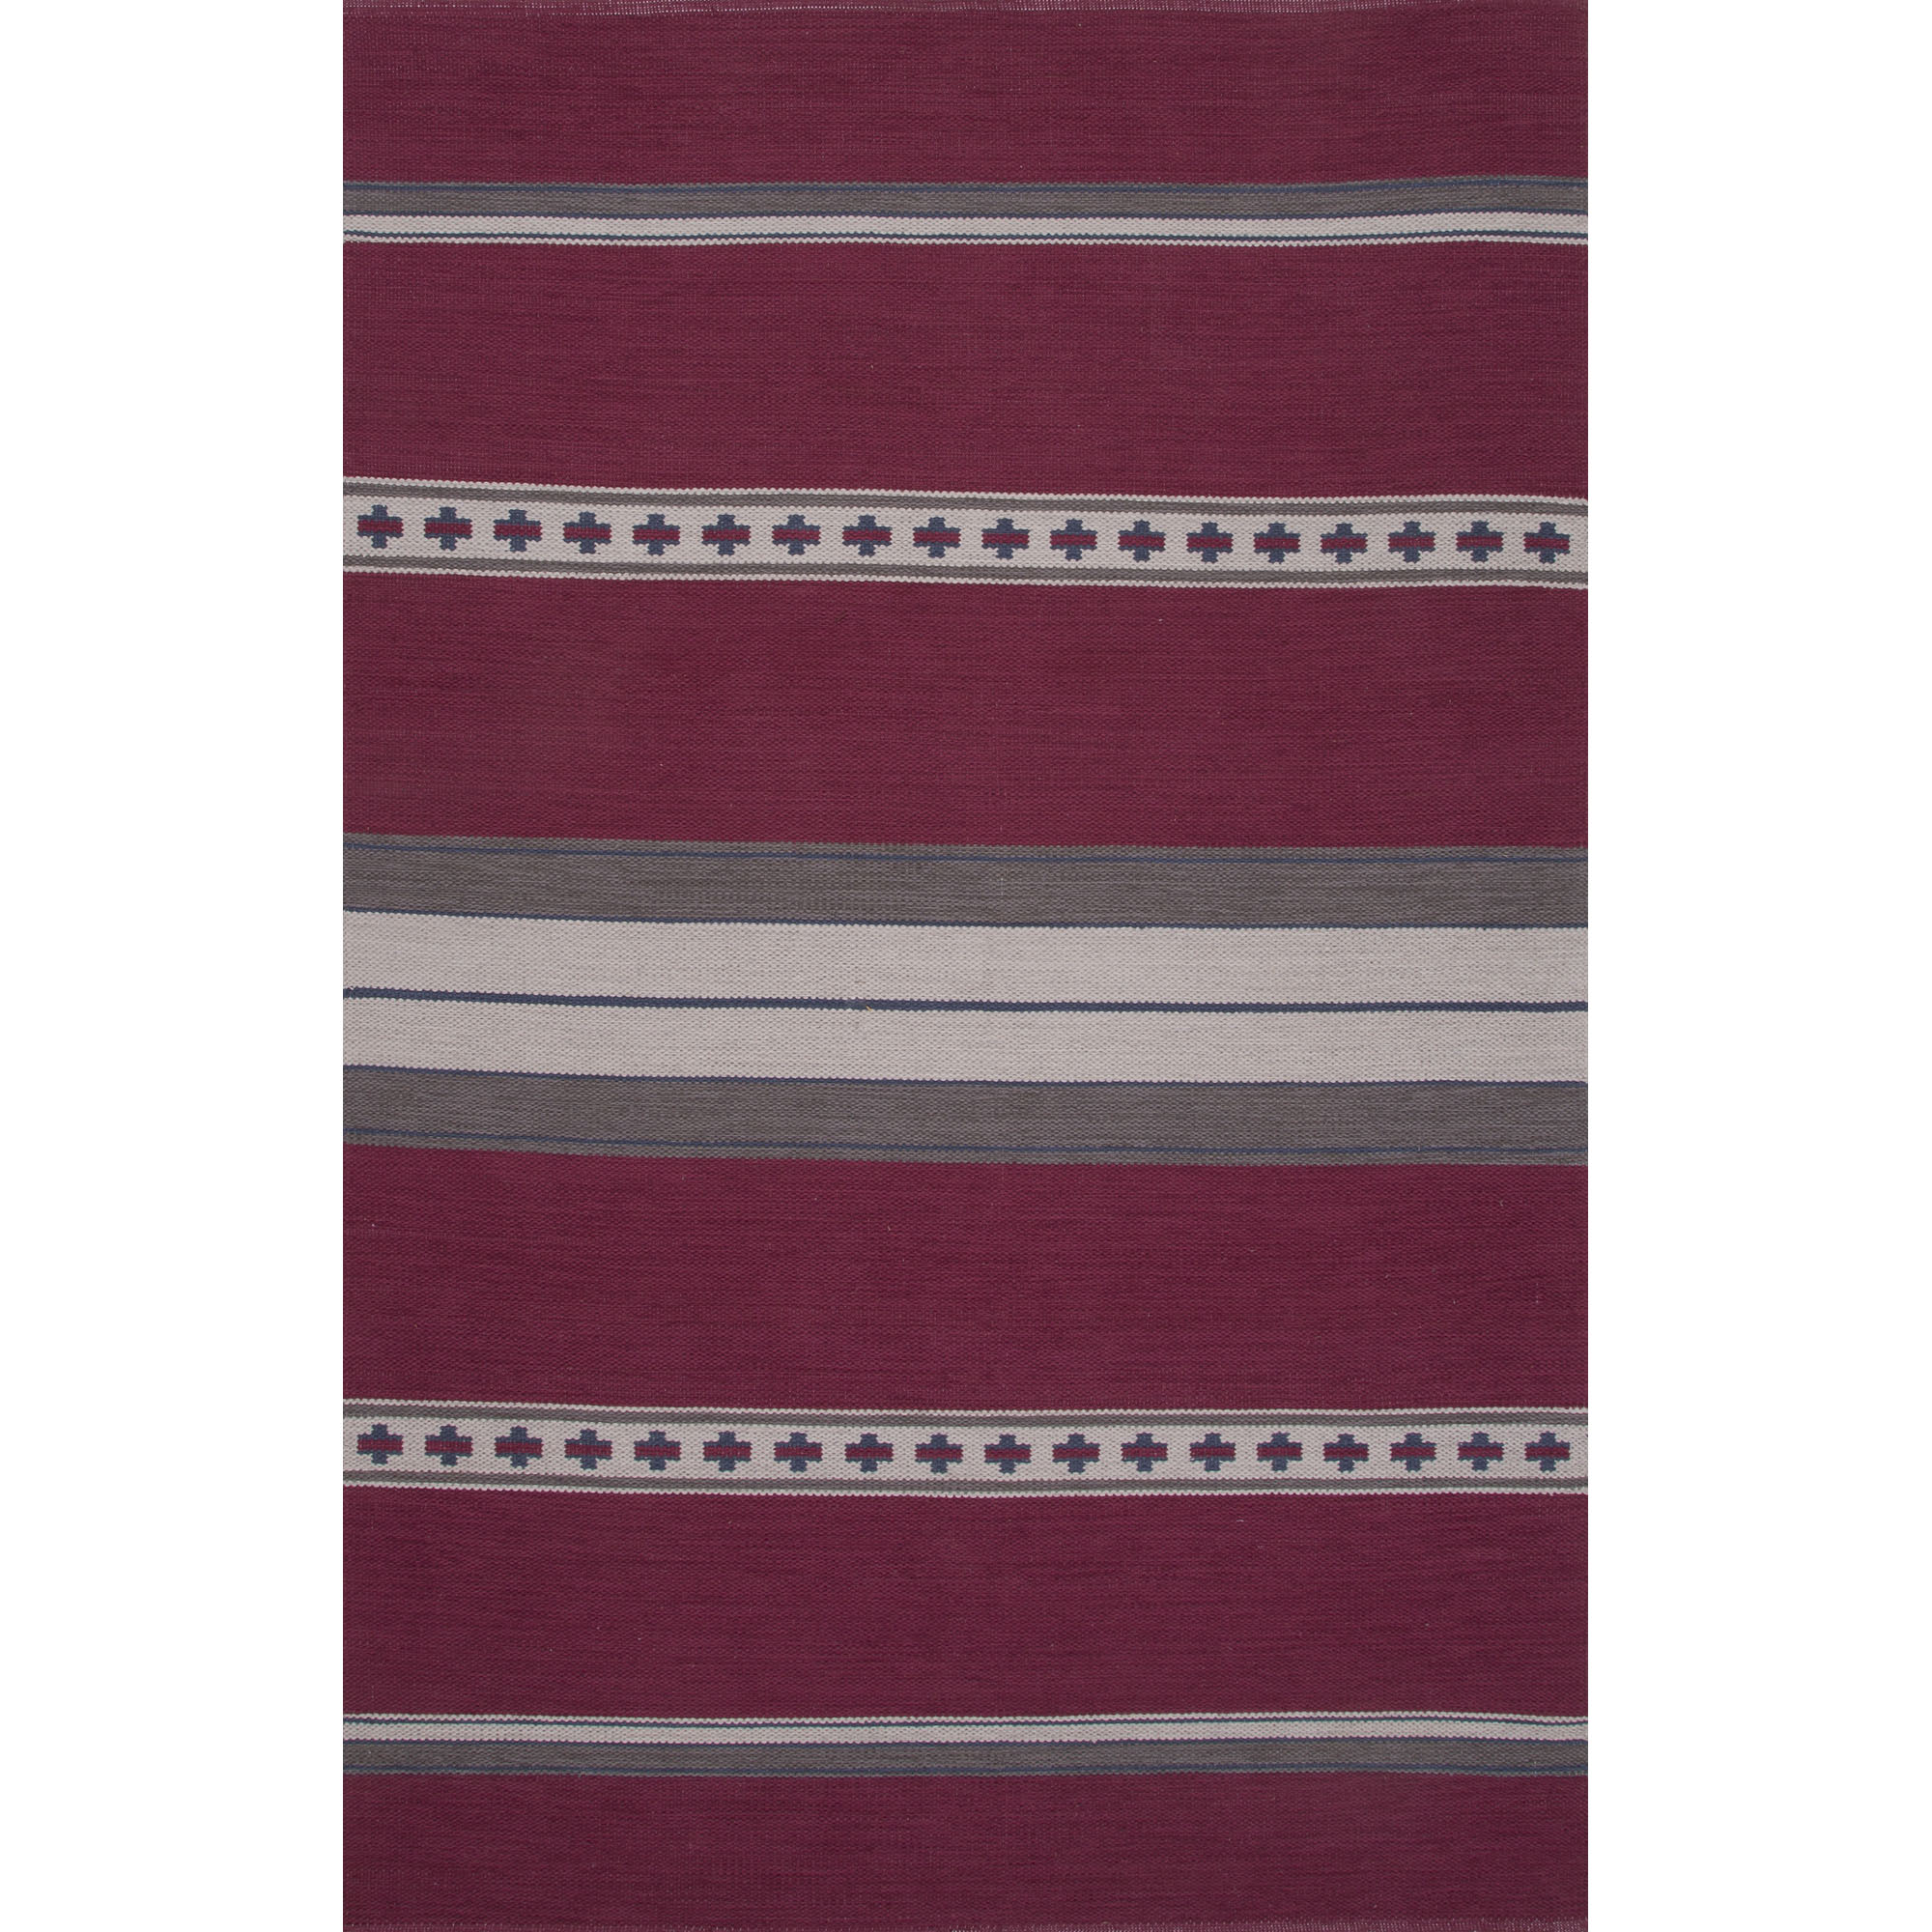 JAIPUR Rugs Traditions Modern Cotton Flat Weave 8 x 11 Rug - Item Number: RUG122221